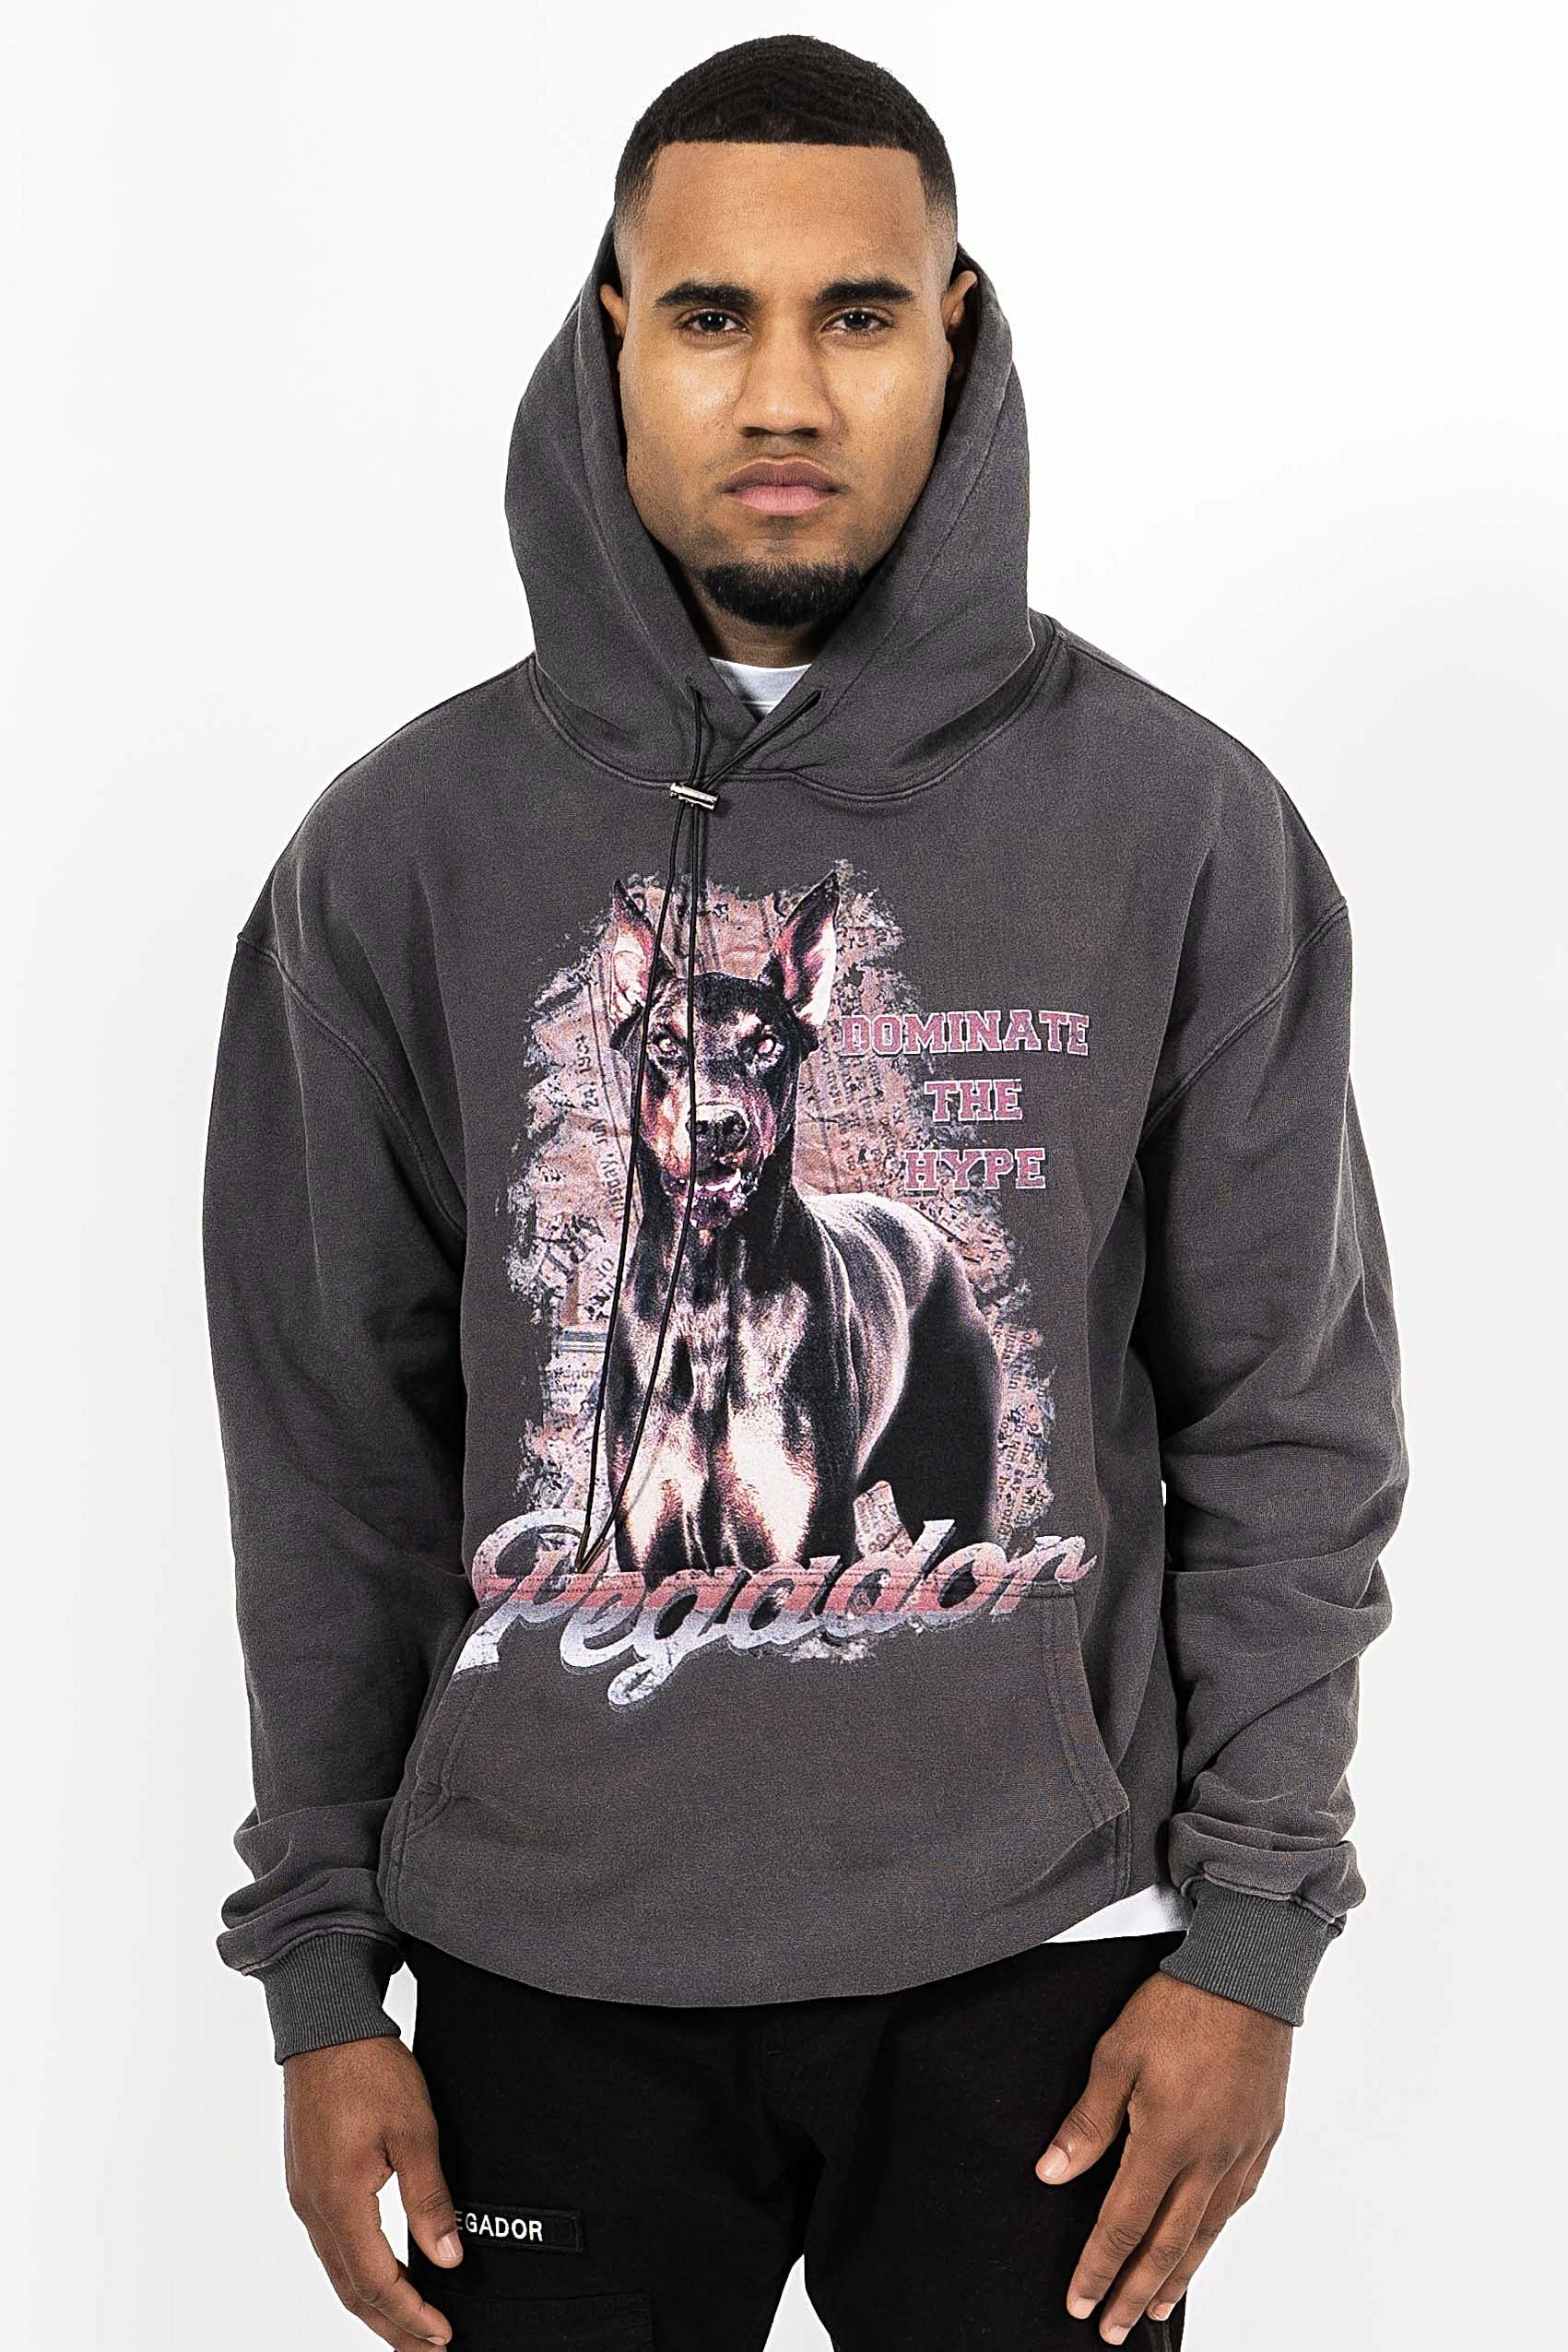 Denver Oversized Hoodie washed Grey - PEGADOR - Dominate the Hype